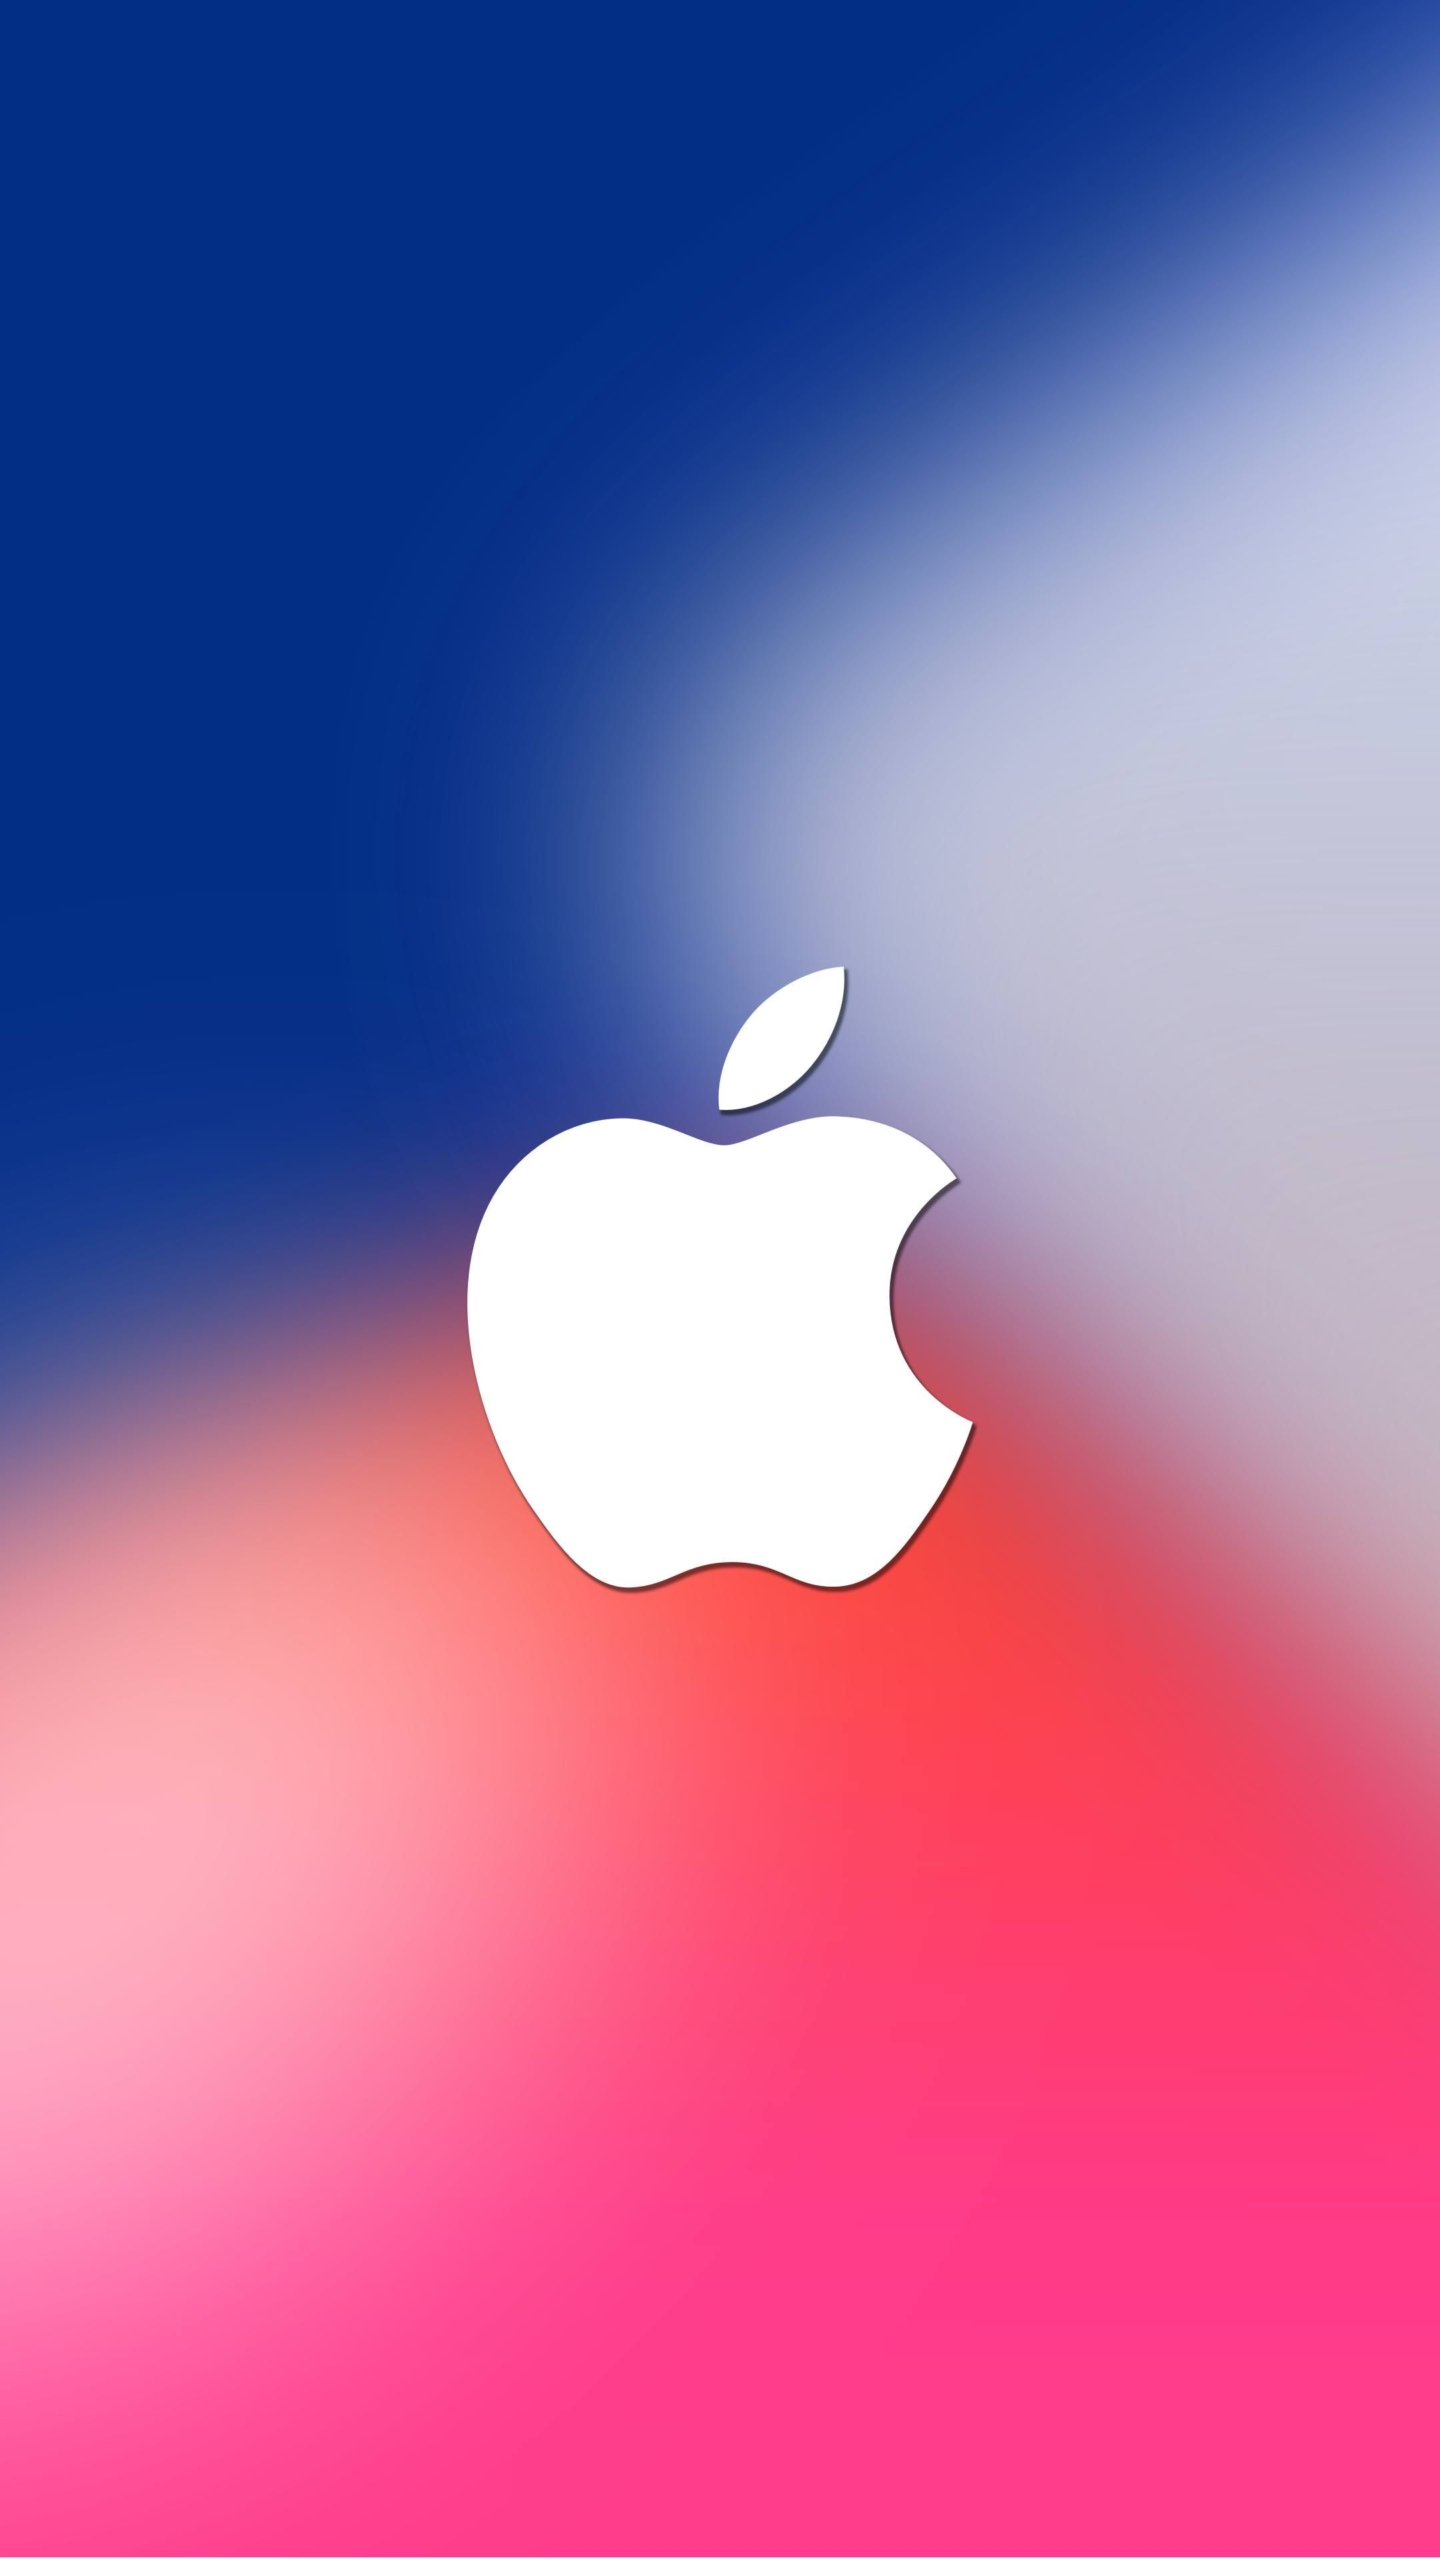 Get the Apple iPhone Wallpaper You Want